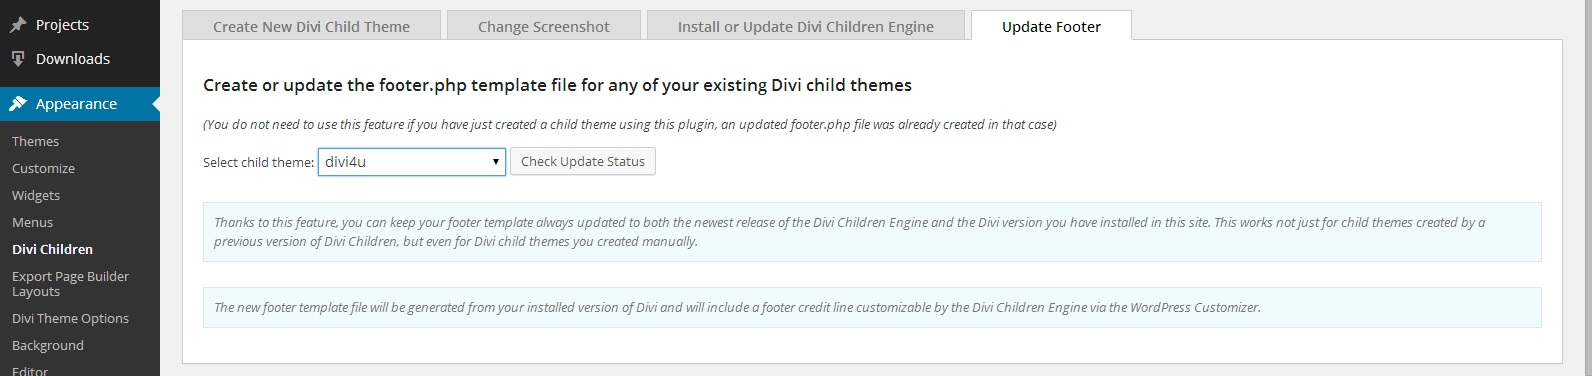 customize-divi-update-divi-child-footer